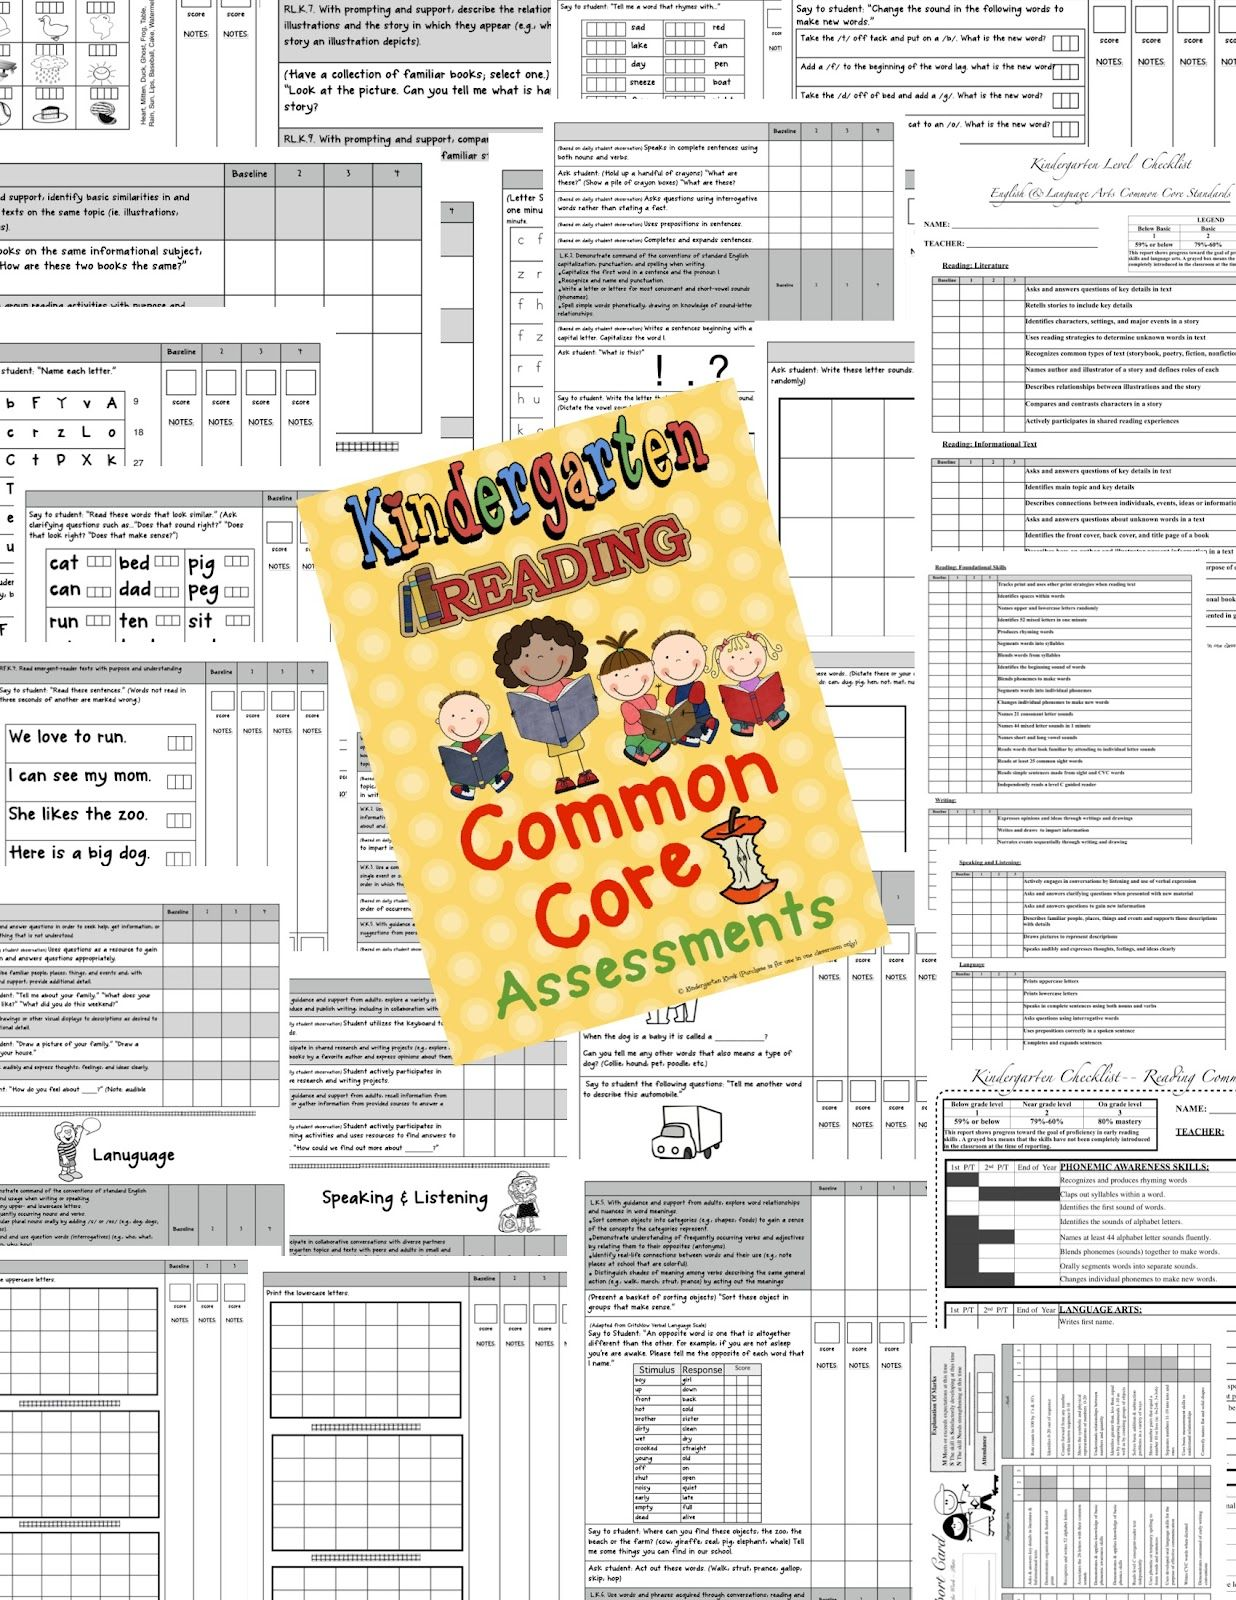 Kindergarten Kiosk Common Core Assessments For